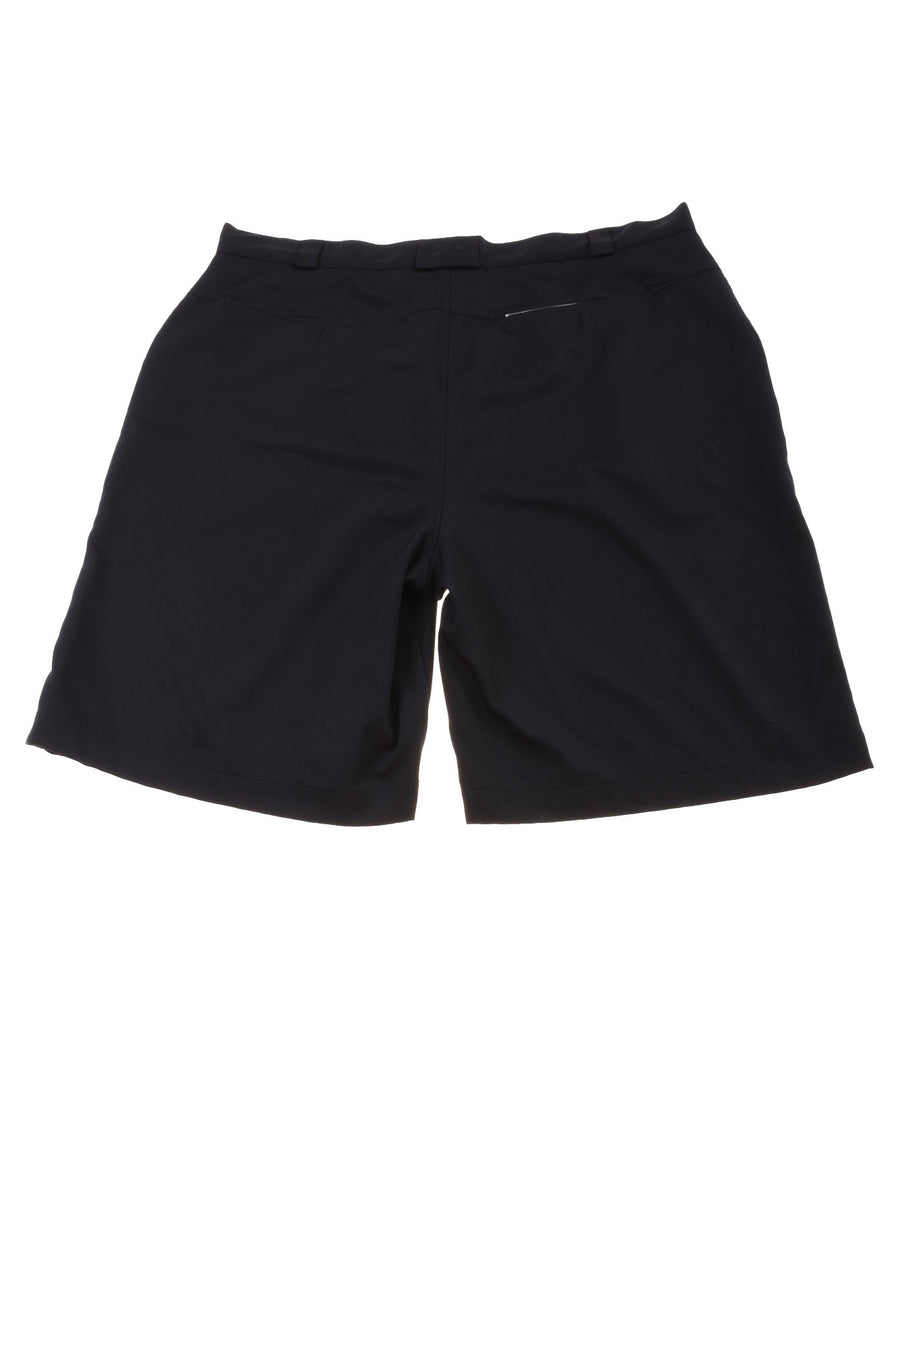 USED Under Armour Men's Shorts 38 Black